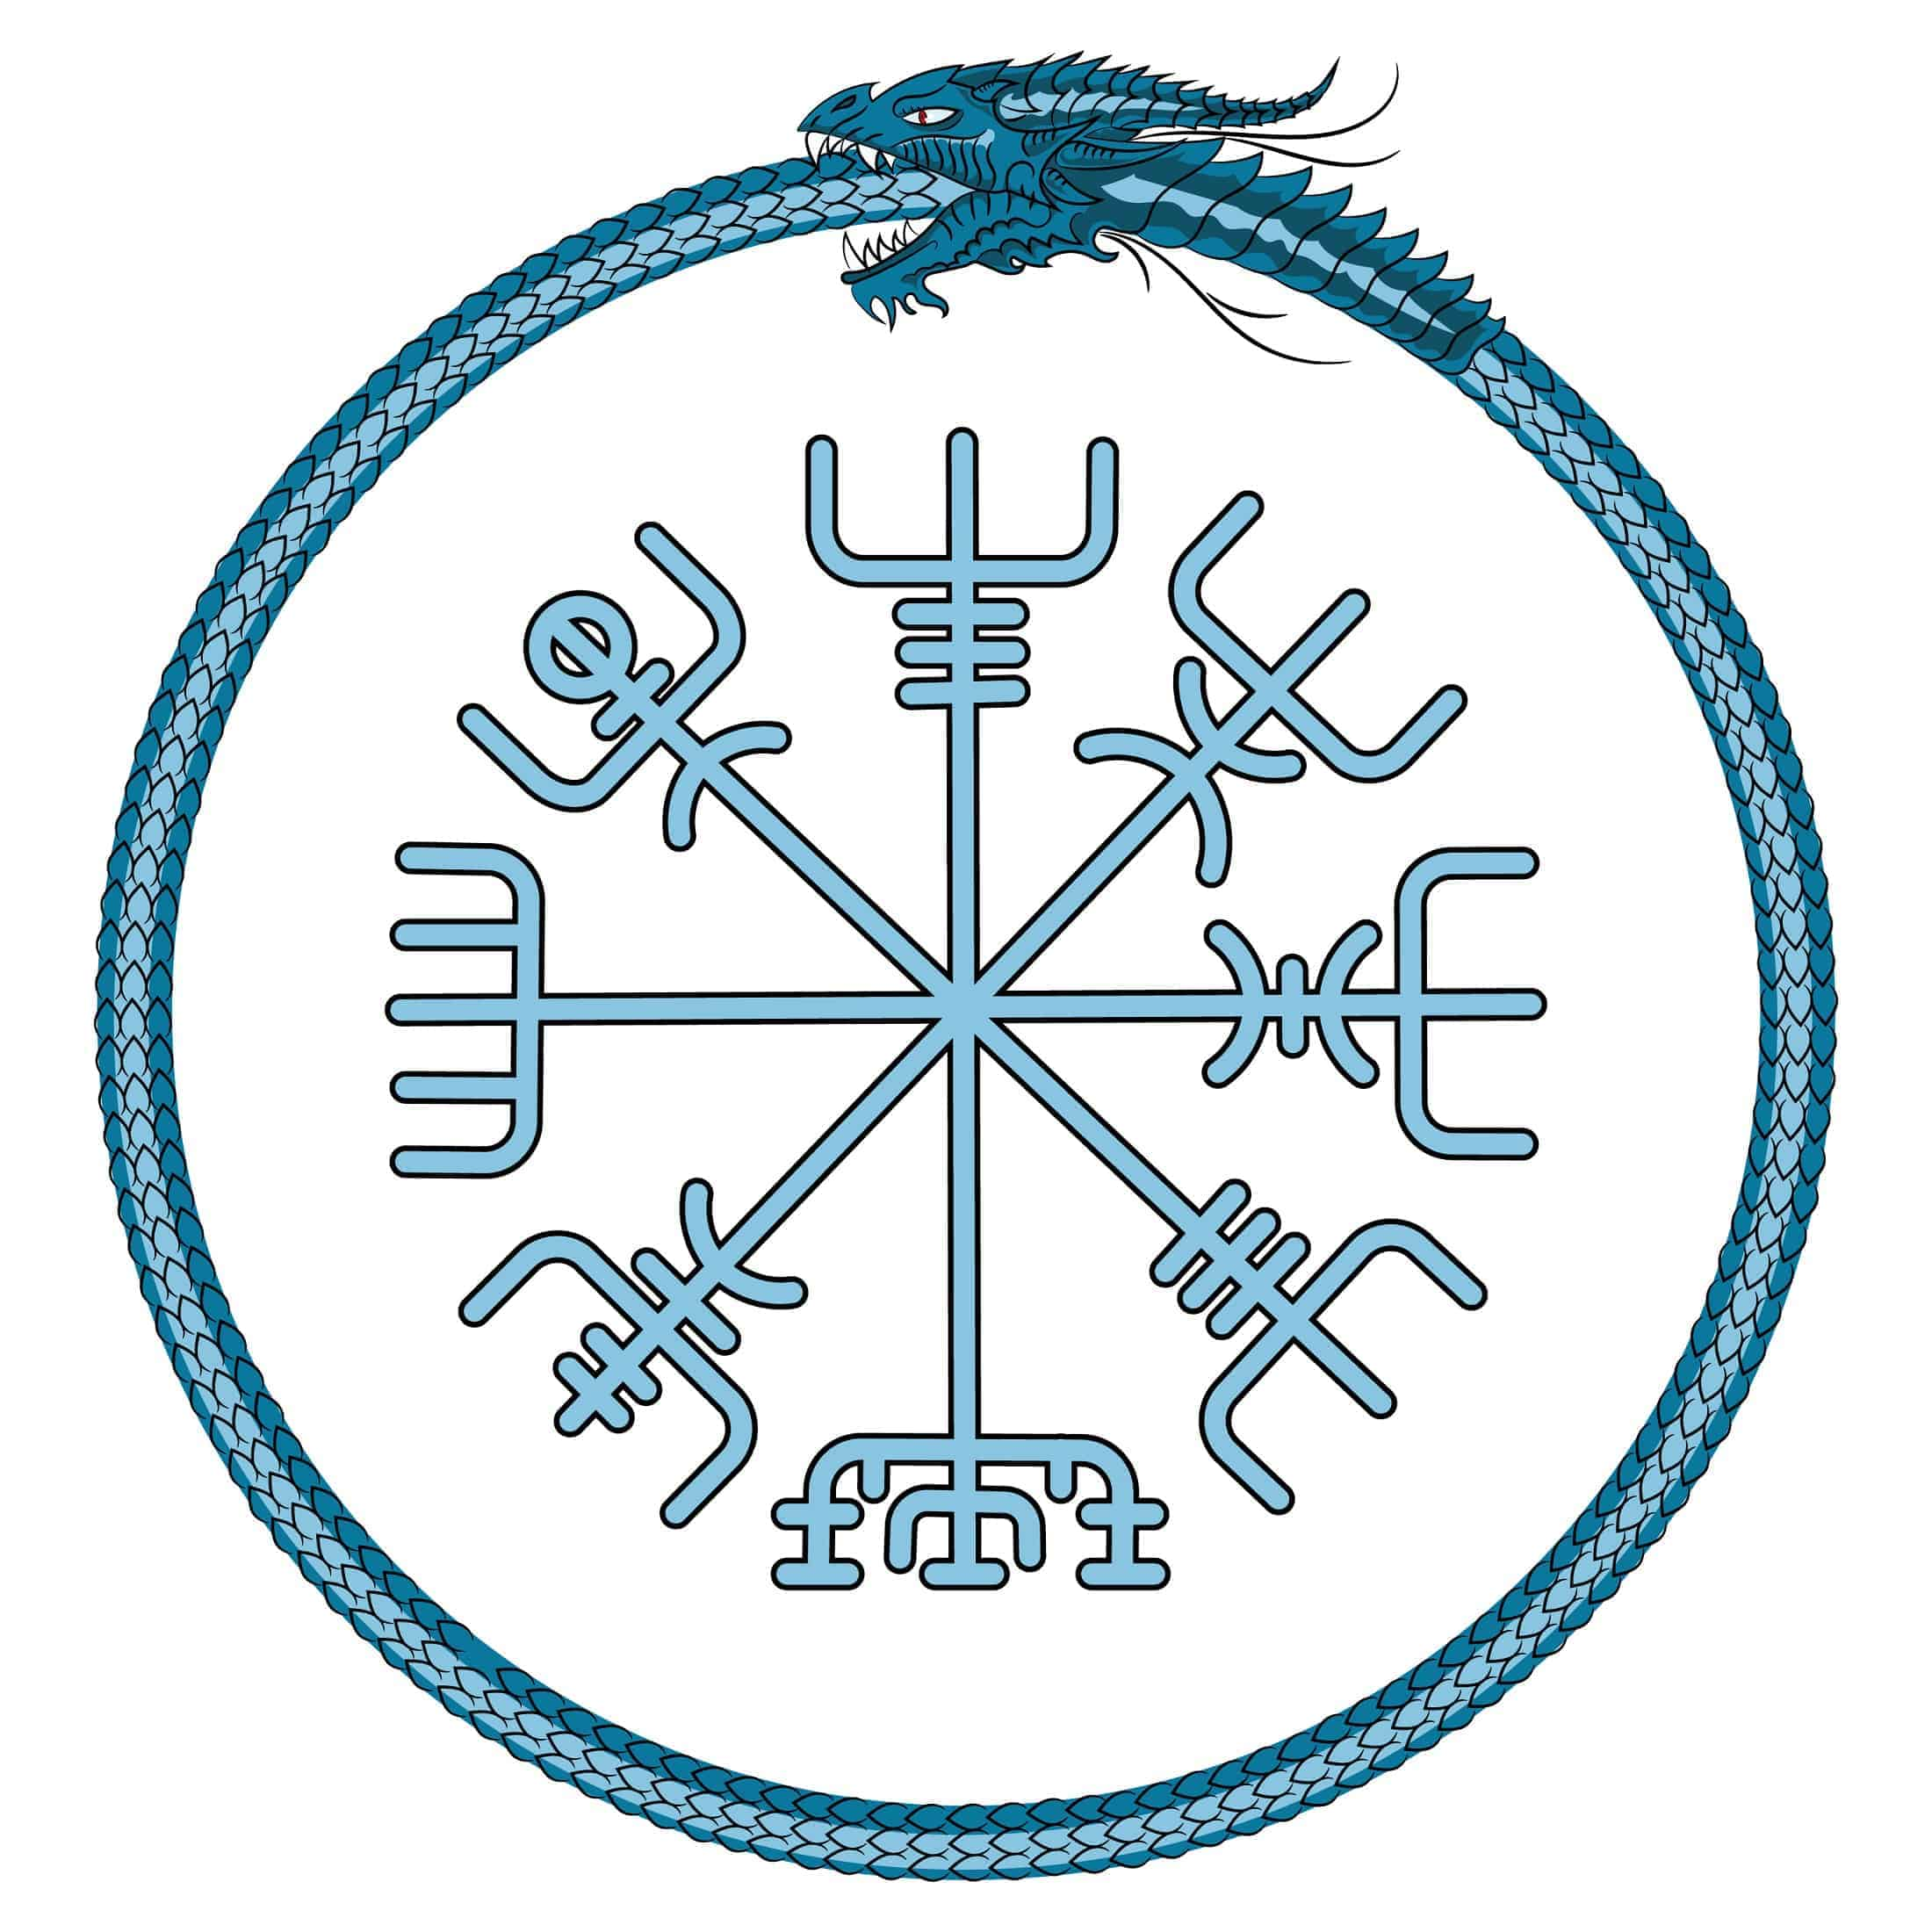 Vegvisir A Pagan Symbol Explained, The Runic Viking Compass